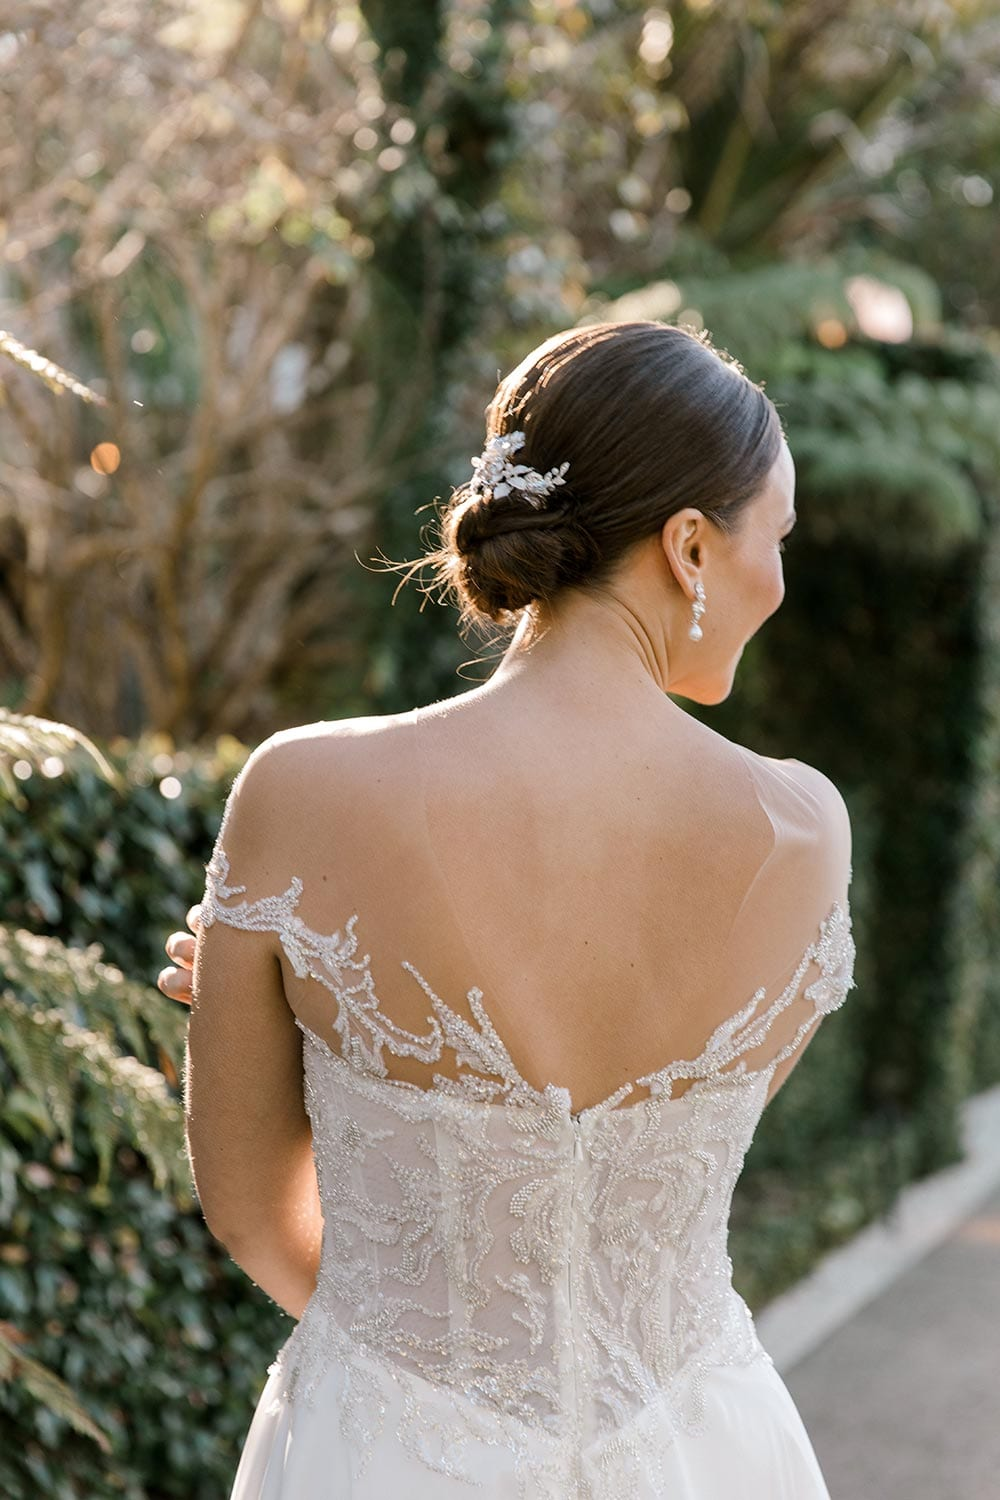 Lena Wedding Dress from Vinka Design. Gorgeous wedding dress with fitted bodice & dreamy silk chiffon & tulle skirt. Off-shoulder detail with an illusion neckline made with fine Italian tulle & lace detail. Detail of back of dress. Photographed in front of beautiful old building.